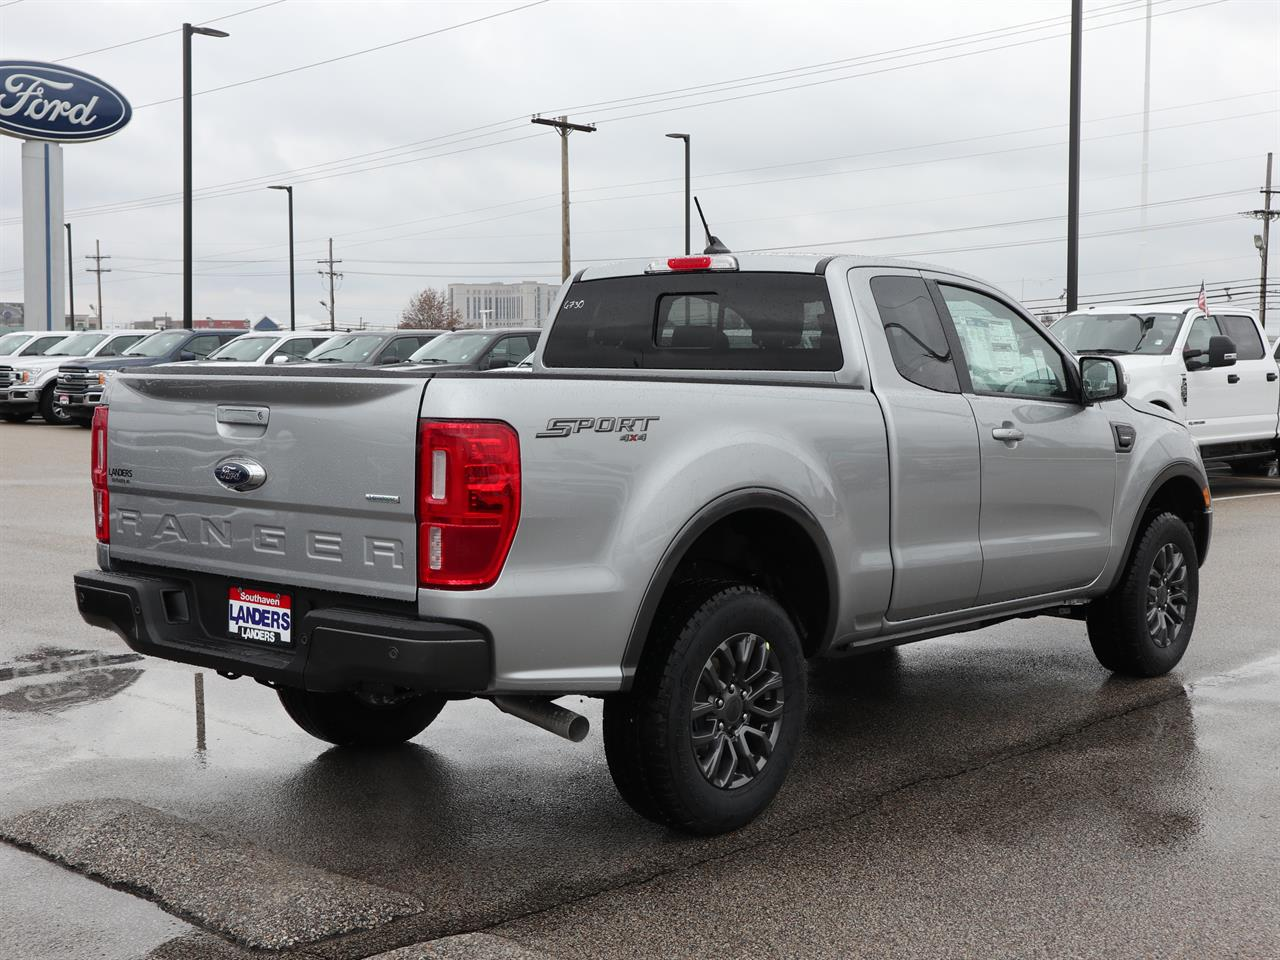 2020 Ford Ranger Super Cab 4x4, Pickup #20ST0937 - photo 1